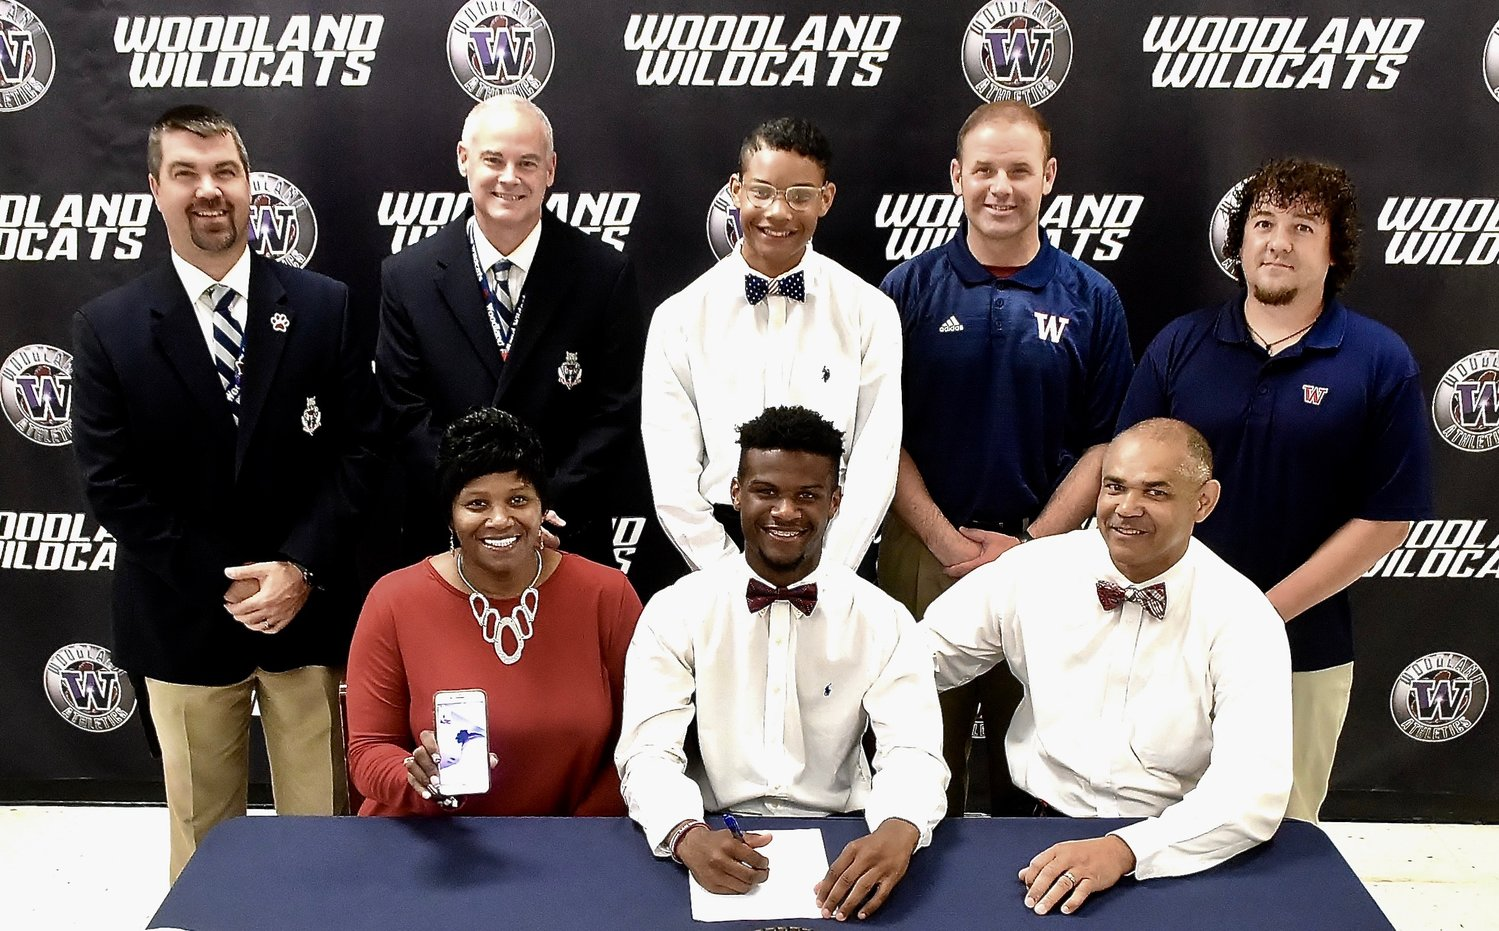 Recent Woodland High graduate Titus Jones signed to play football at Alabama A&M in Huntsville. On hand for the signing were, from left, front row: Marilyn Jones, mother; Stephen Jones, father; back row, John Howard, WHS athletic director; Wes Dickey, then-WHS principal; Caleb Jones, brother; Tony Plott, WHS head football coach; and Mark Middleton, WHS assistant football coach. Marilyn Jones also held a cell phone to allow Titus Jones' brother, Emmanuel, to video chat during the ceremony.